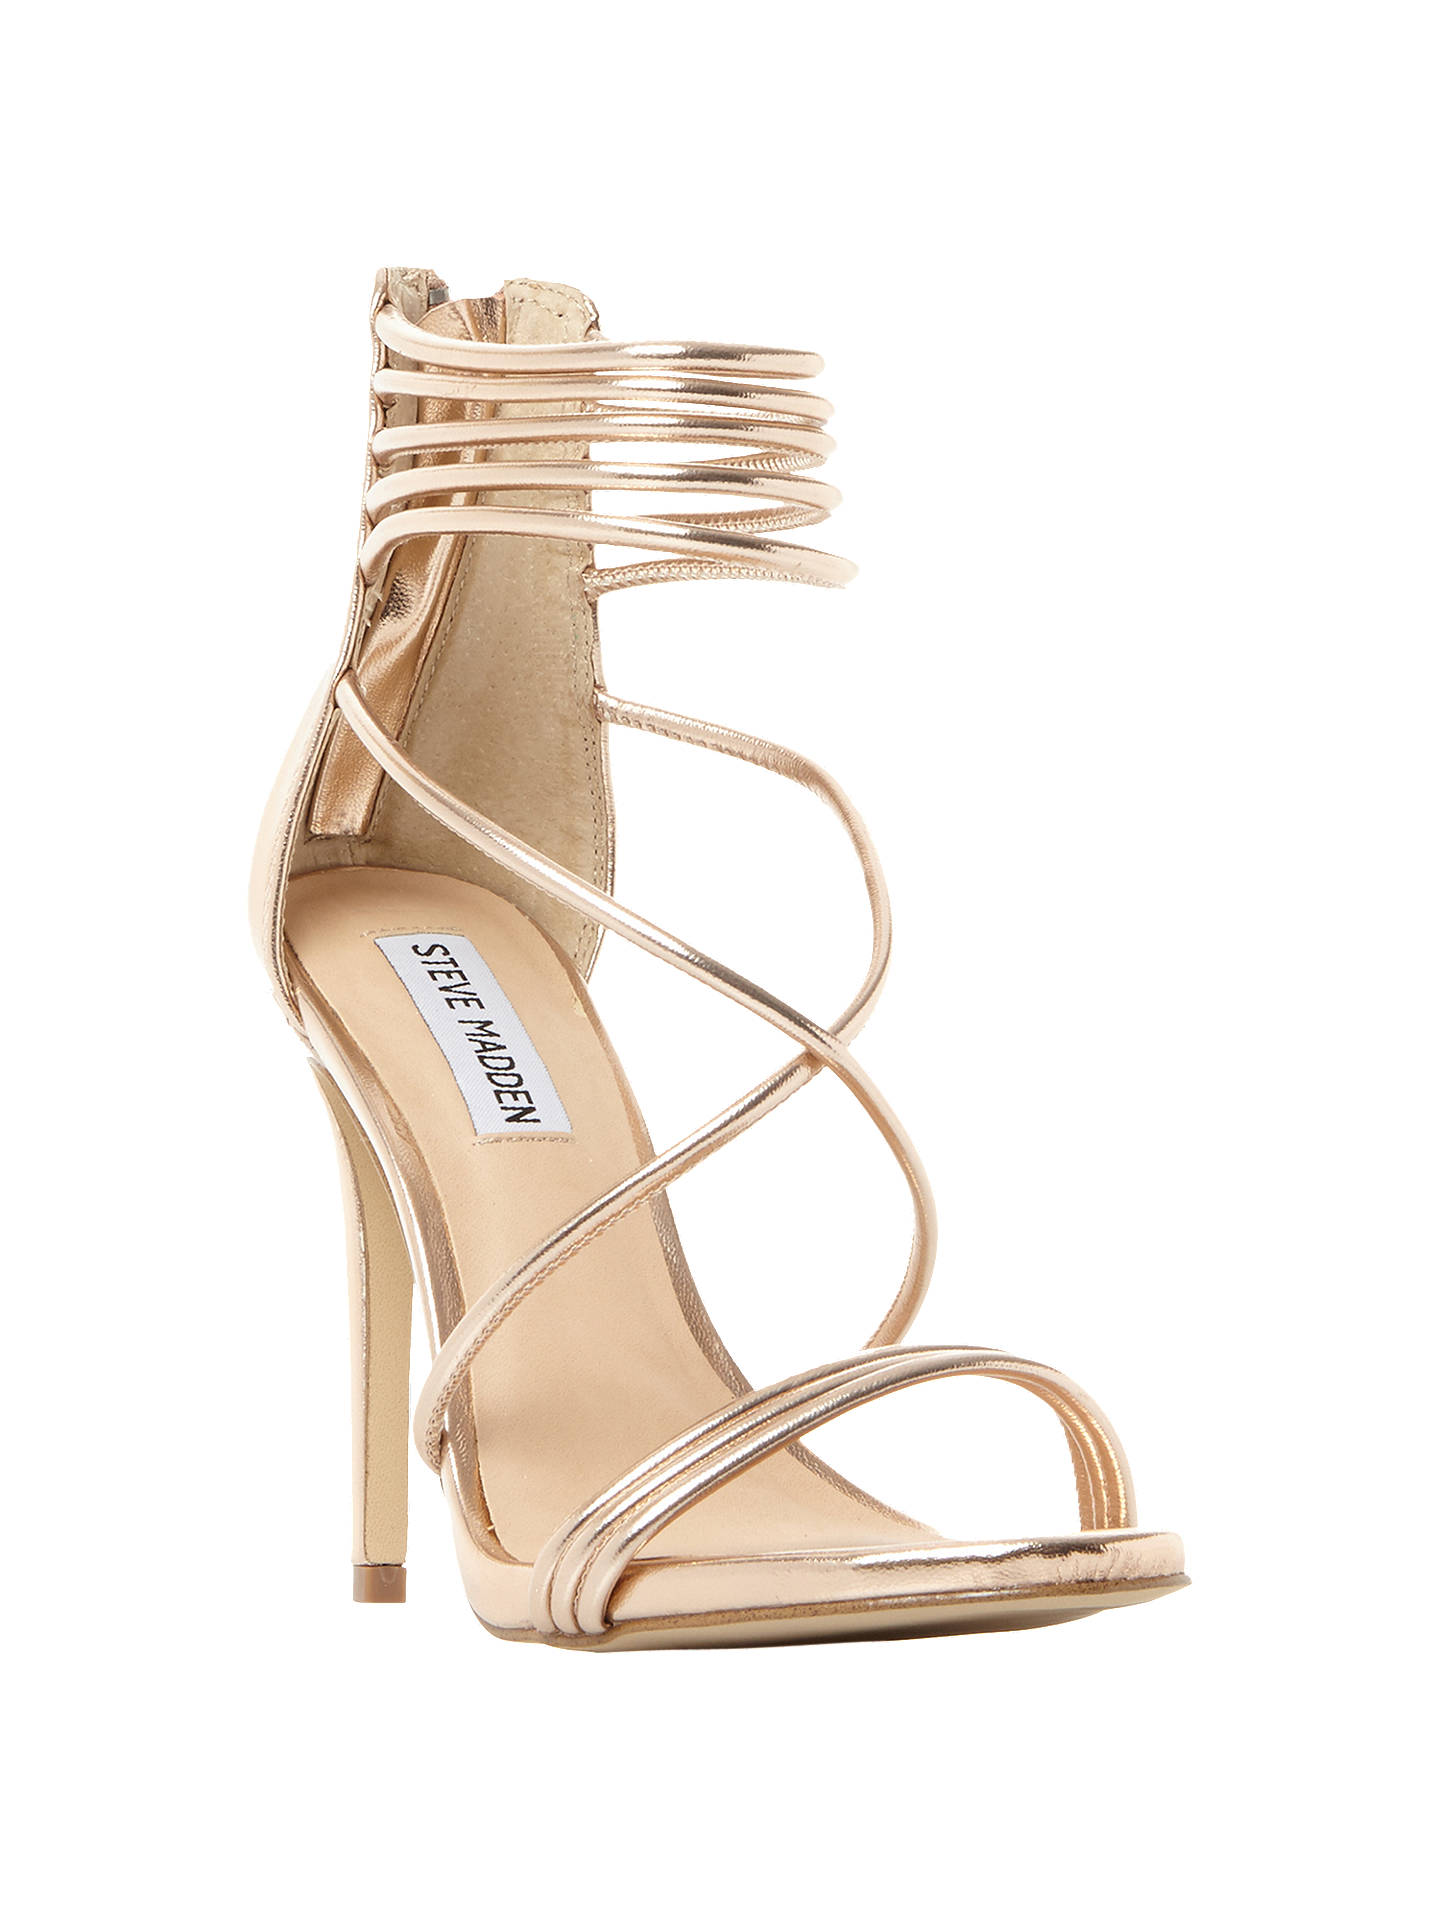 86def03b42 Buy Steve Madden Answer Multi Strap Stiletto Heeled Sandals, Rose Gold  Leather, 3 Online ...